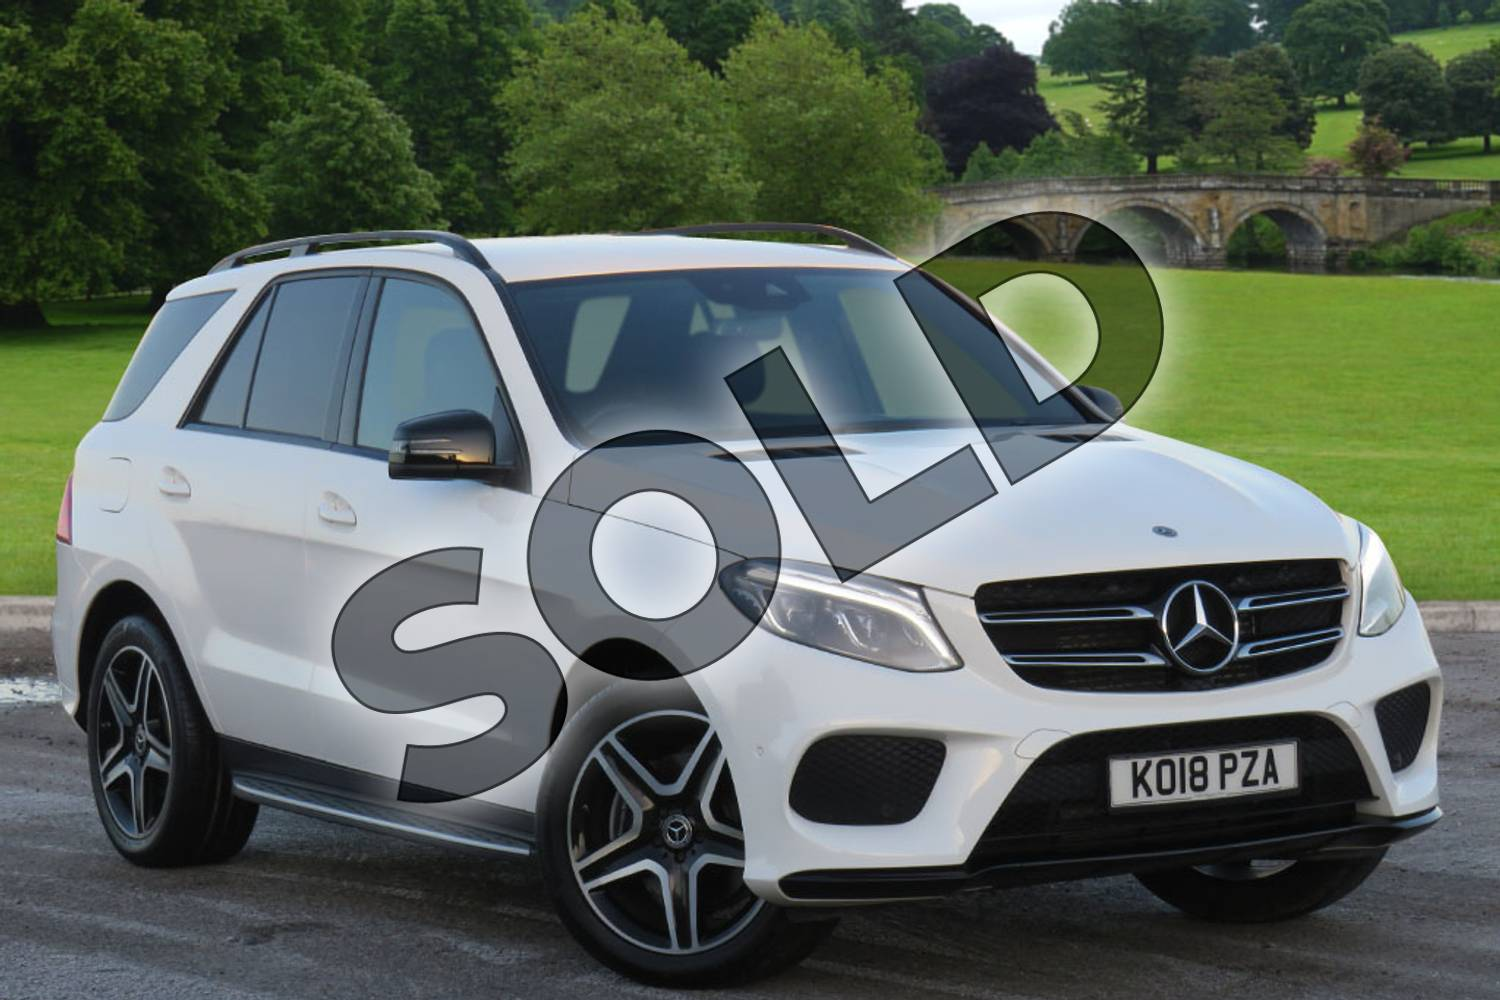 2018 Mercedes-Benz GLE Diesel Estate Diesel GLE 250d 4Matic AMG Night Edition 5dr 9G-Tronic in polar white at Mercedes-Benz of Hull